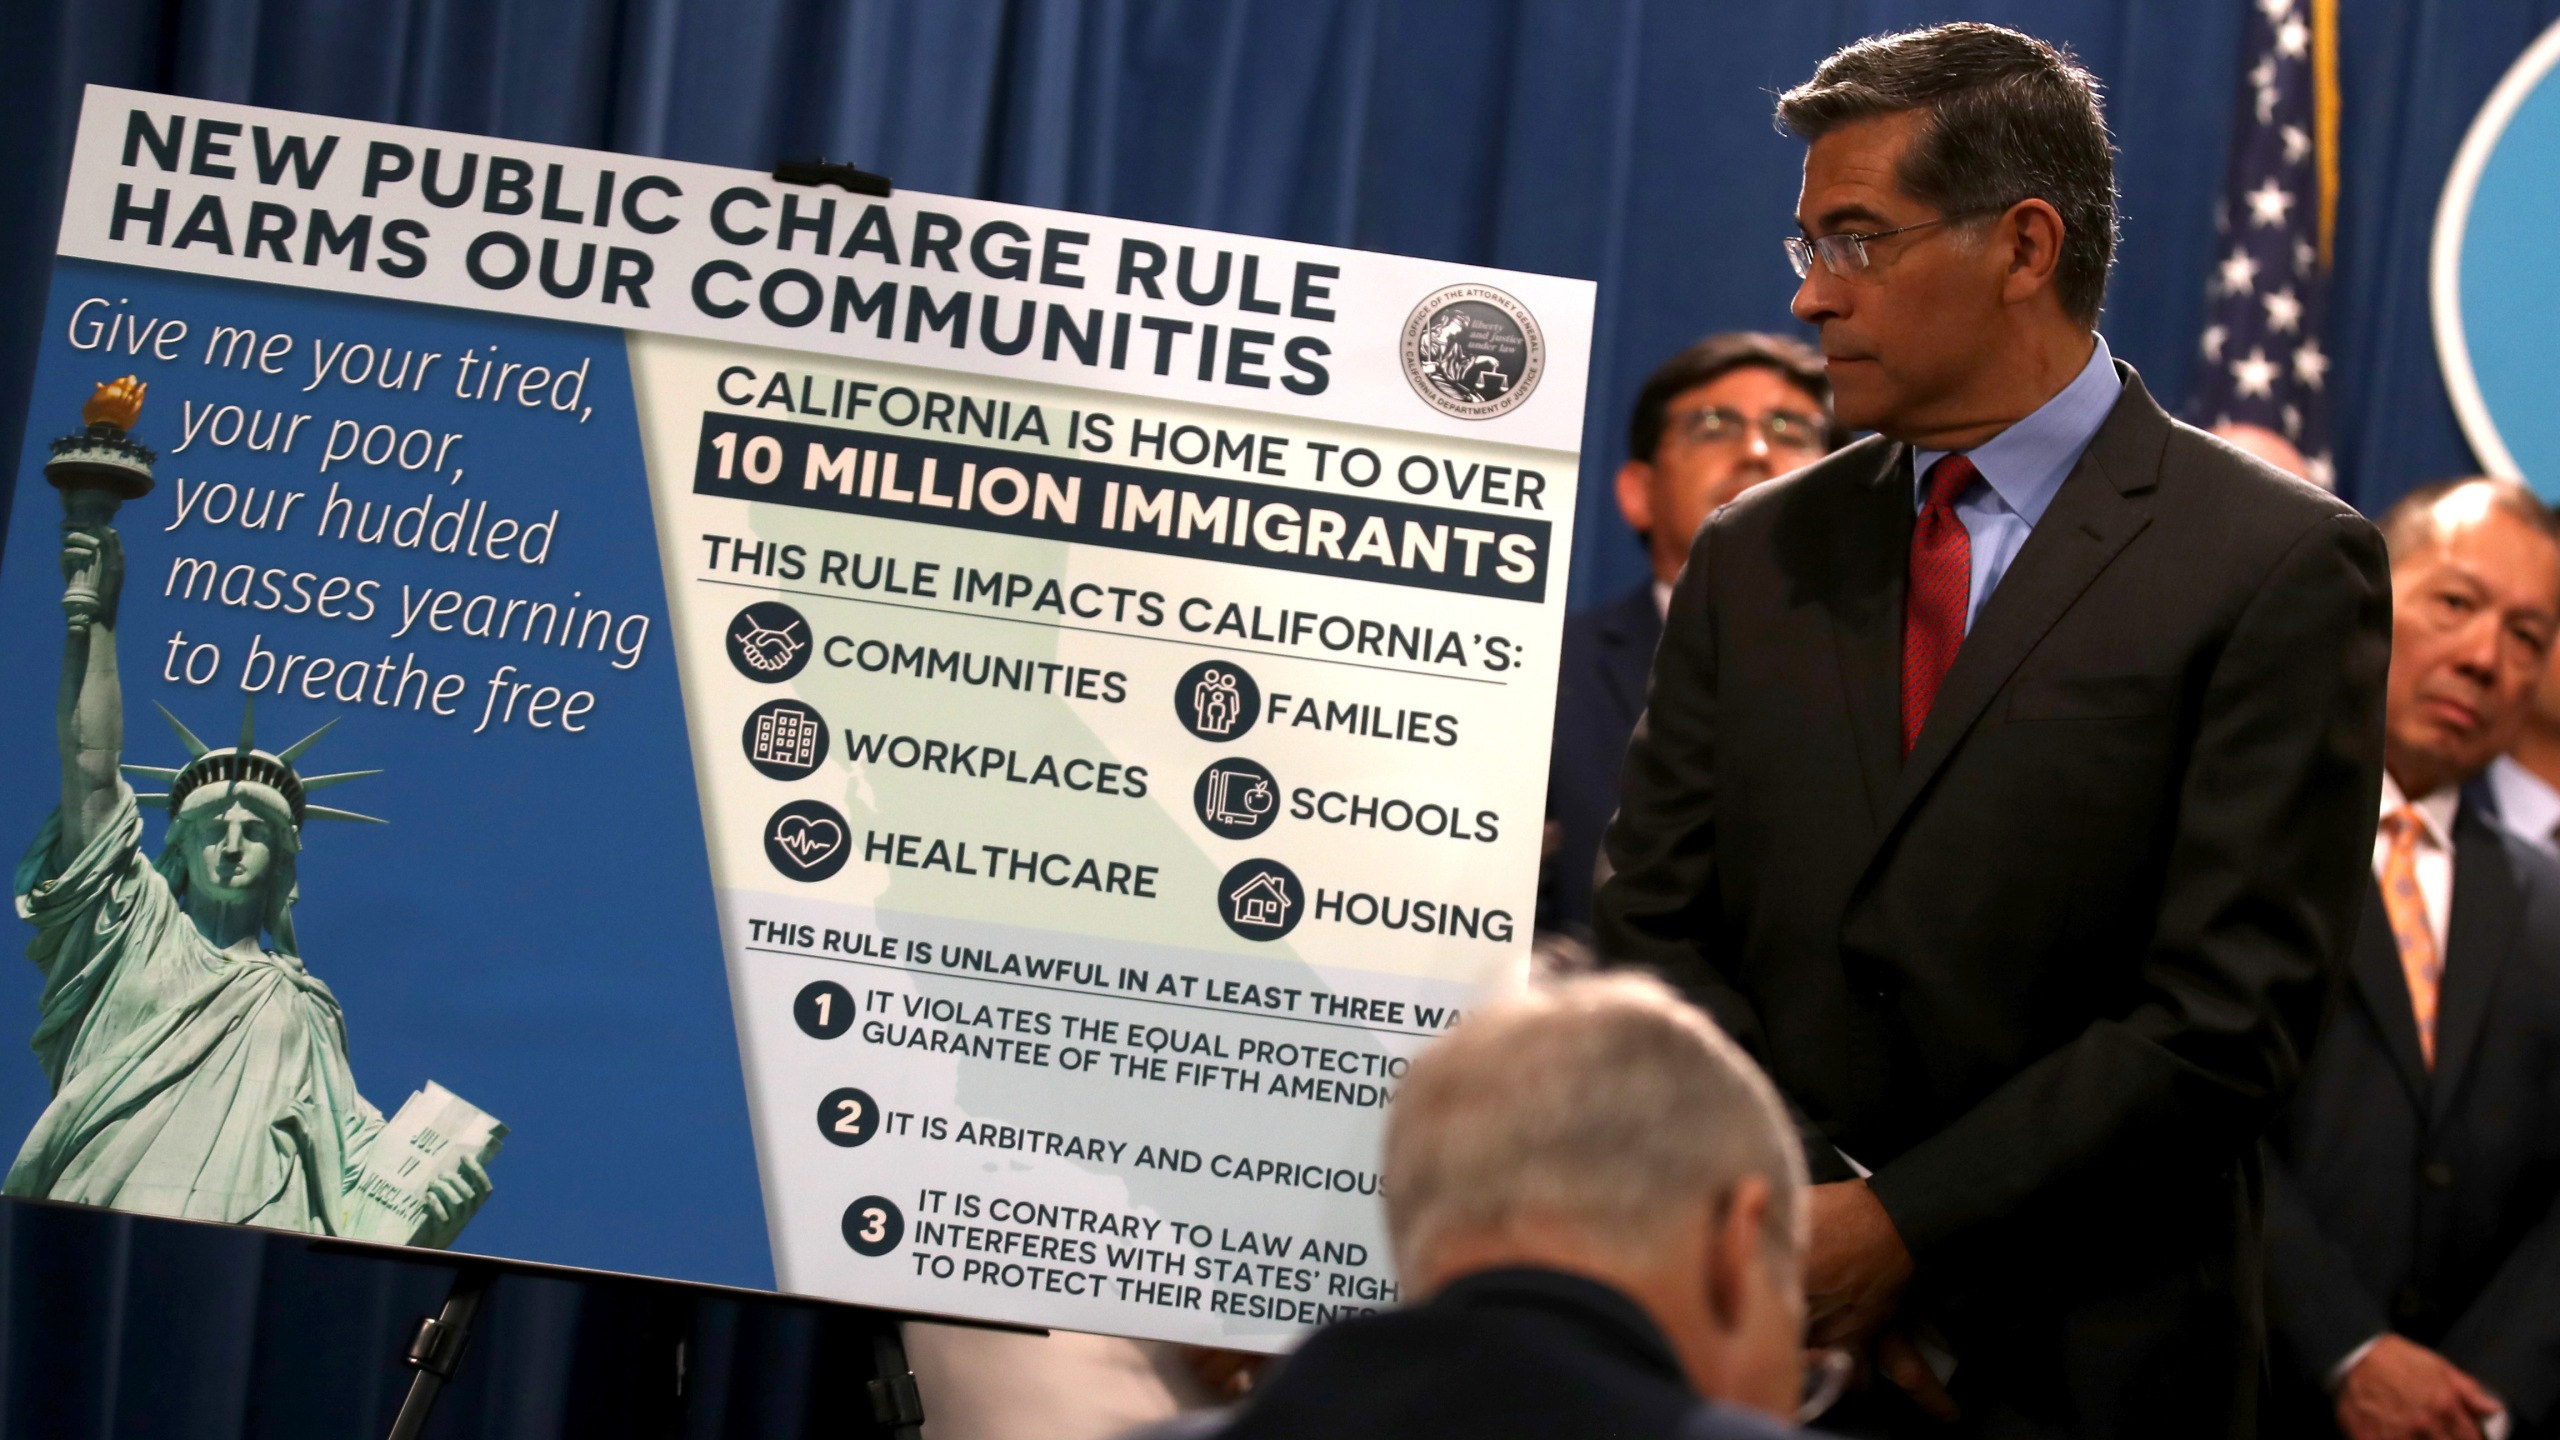 California Attorney General Xavier Becerra looks at a poster displayed during a news conference with Gov. Gavin Newsom at the State Capitol on Aug. 16, 2019 in Sacramento. (Credit: Justin Sullivan/Getty Images)